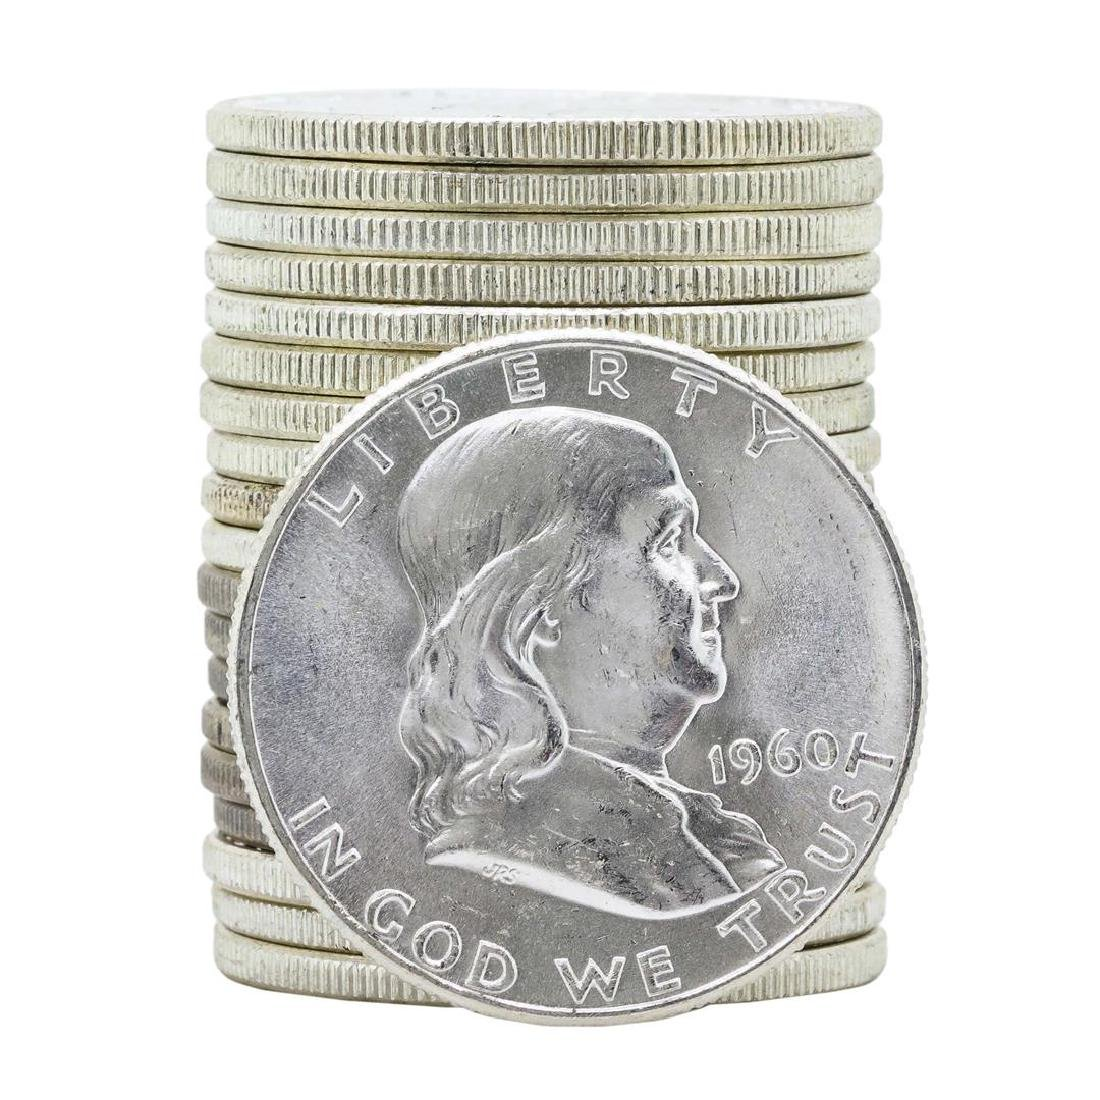 Roll of (20) 1960 Brilliant Uncirculated Franklin Half